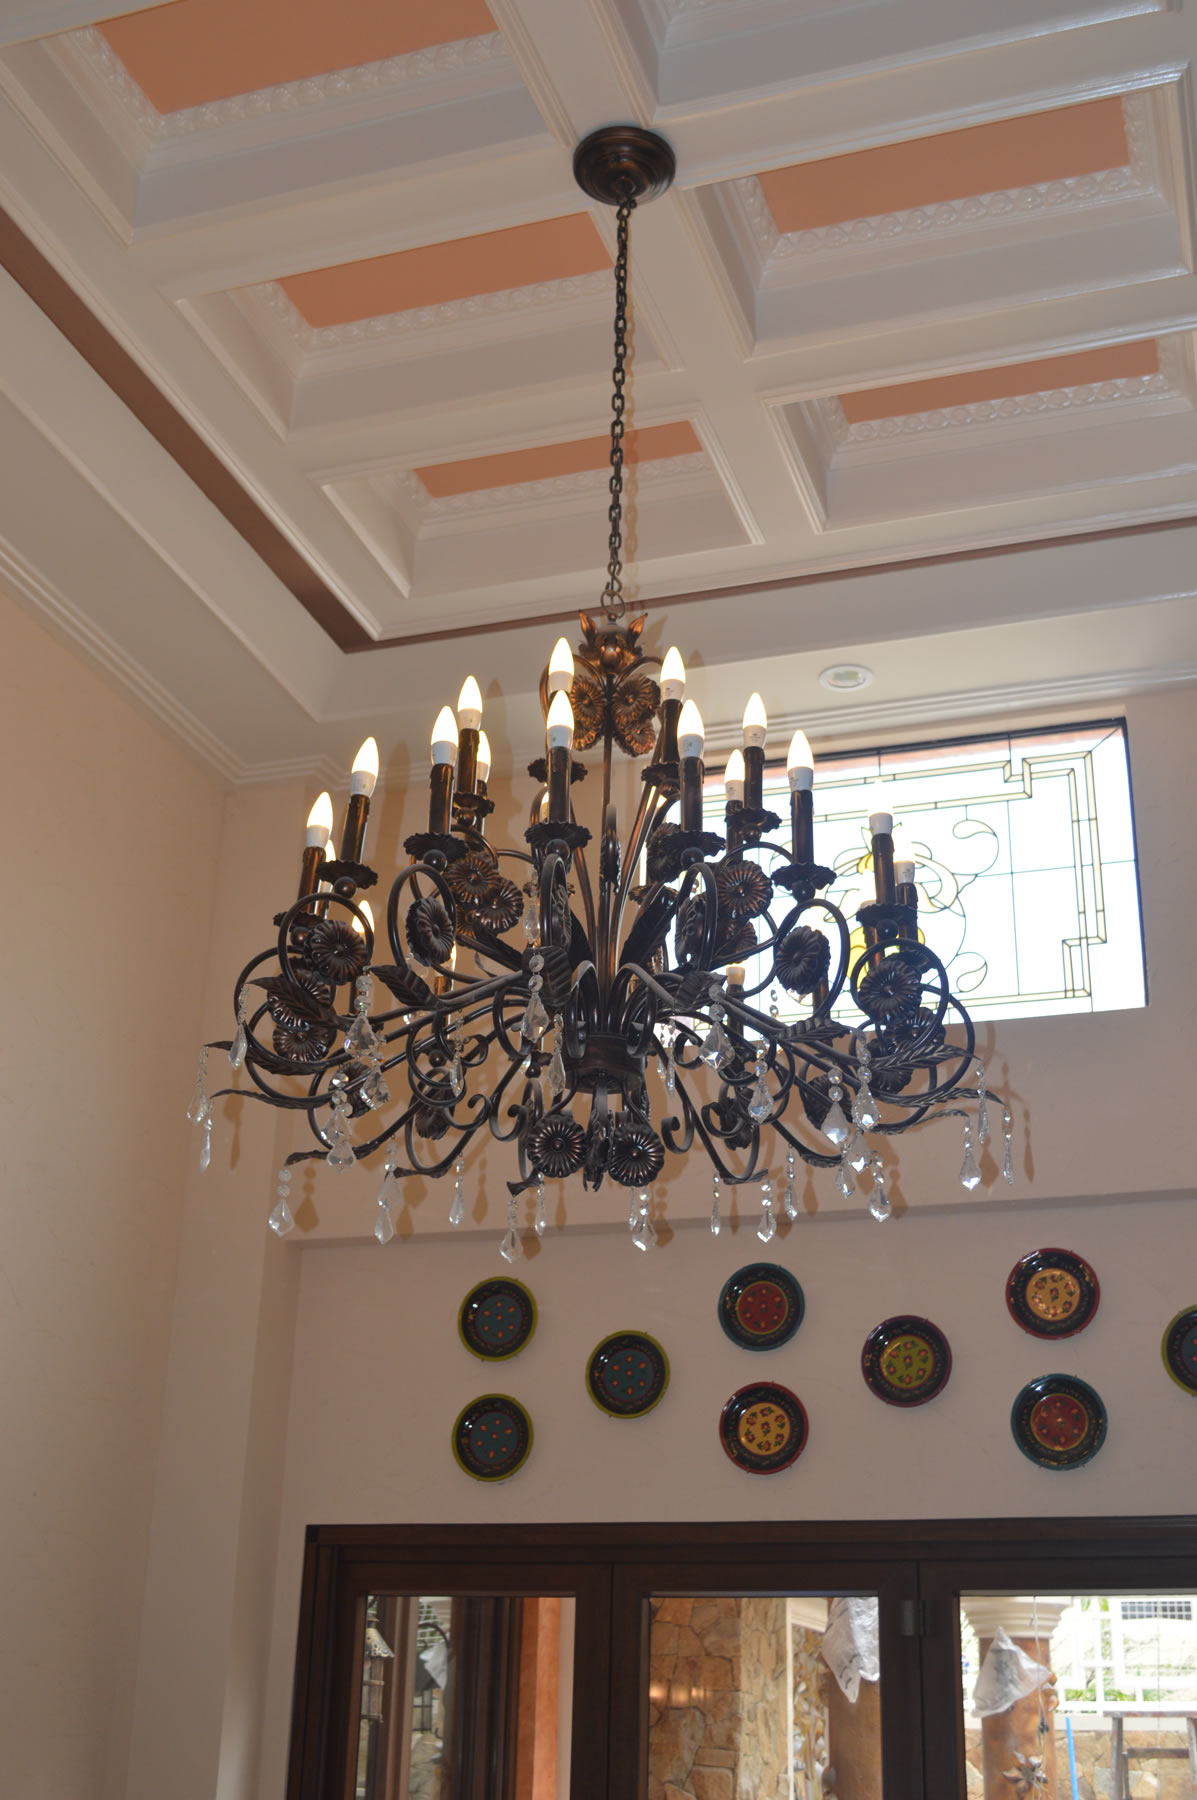 Candle Light Chandelier Glass Railings Philippines